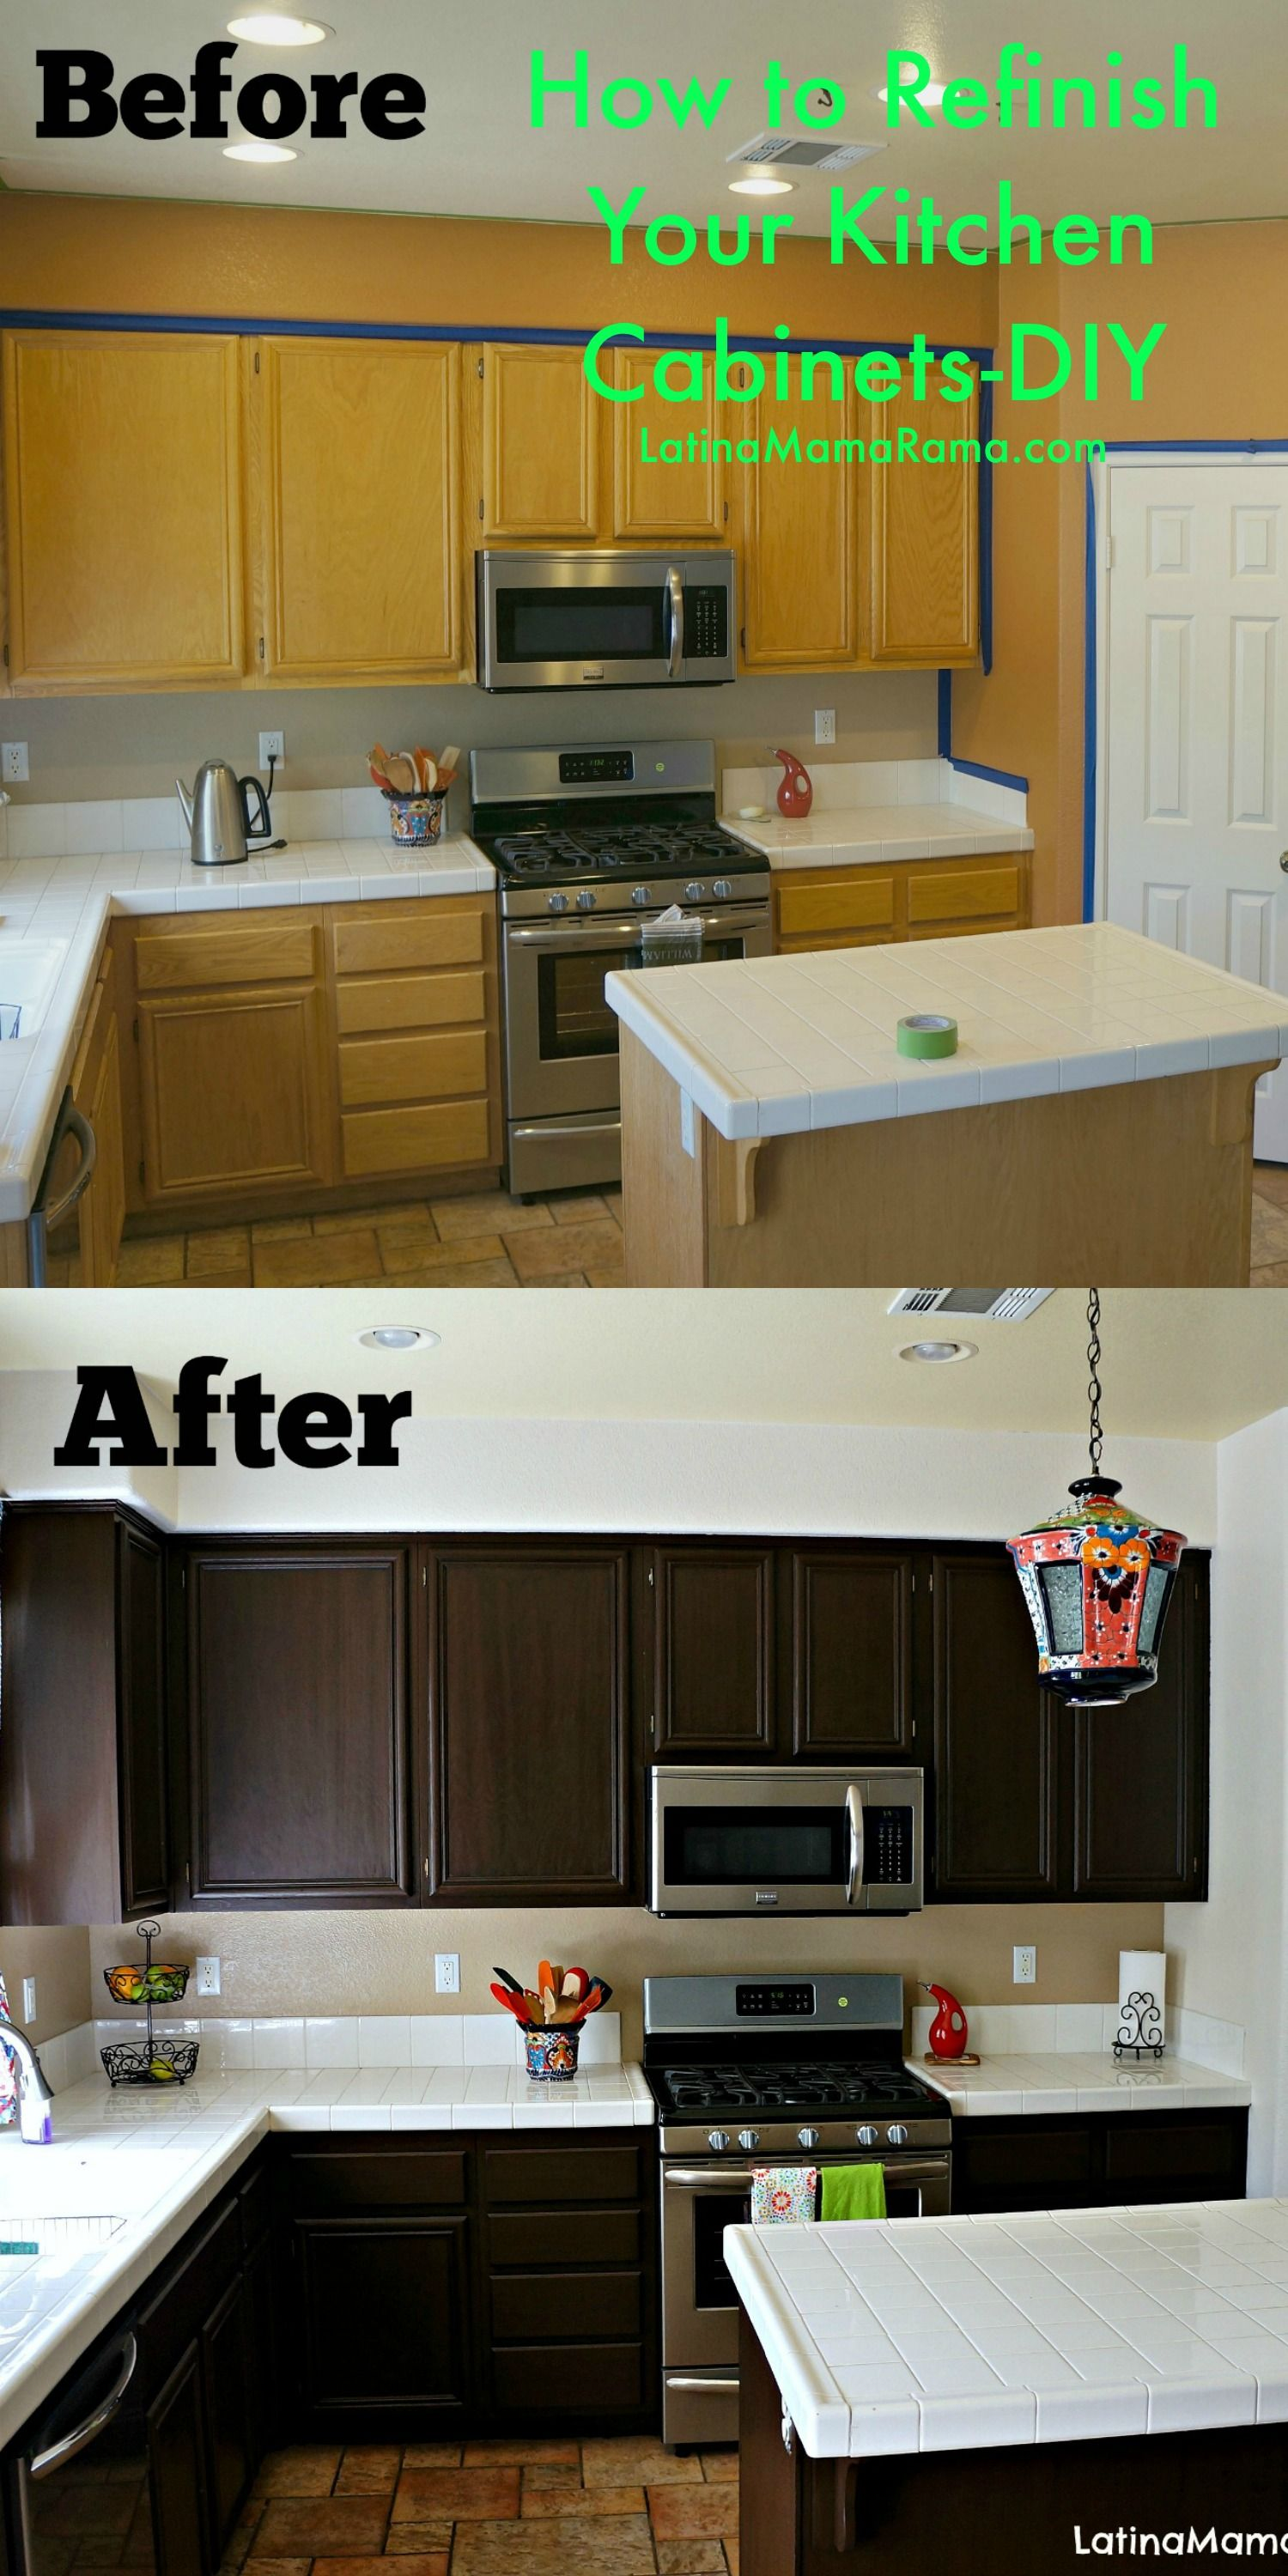 How to Refinish Your Kitchen Cabinets | Pinterest | Kitchens, House ...